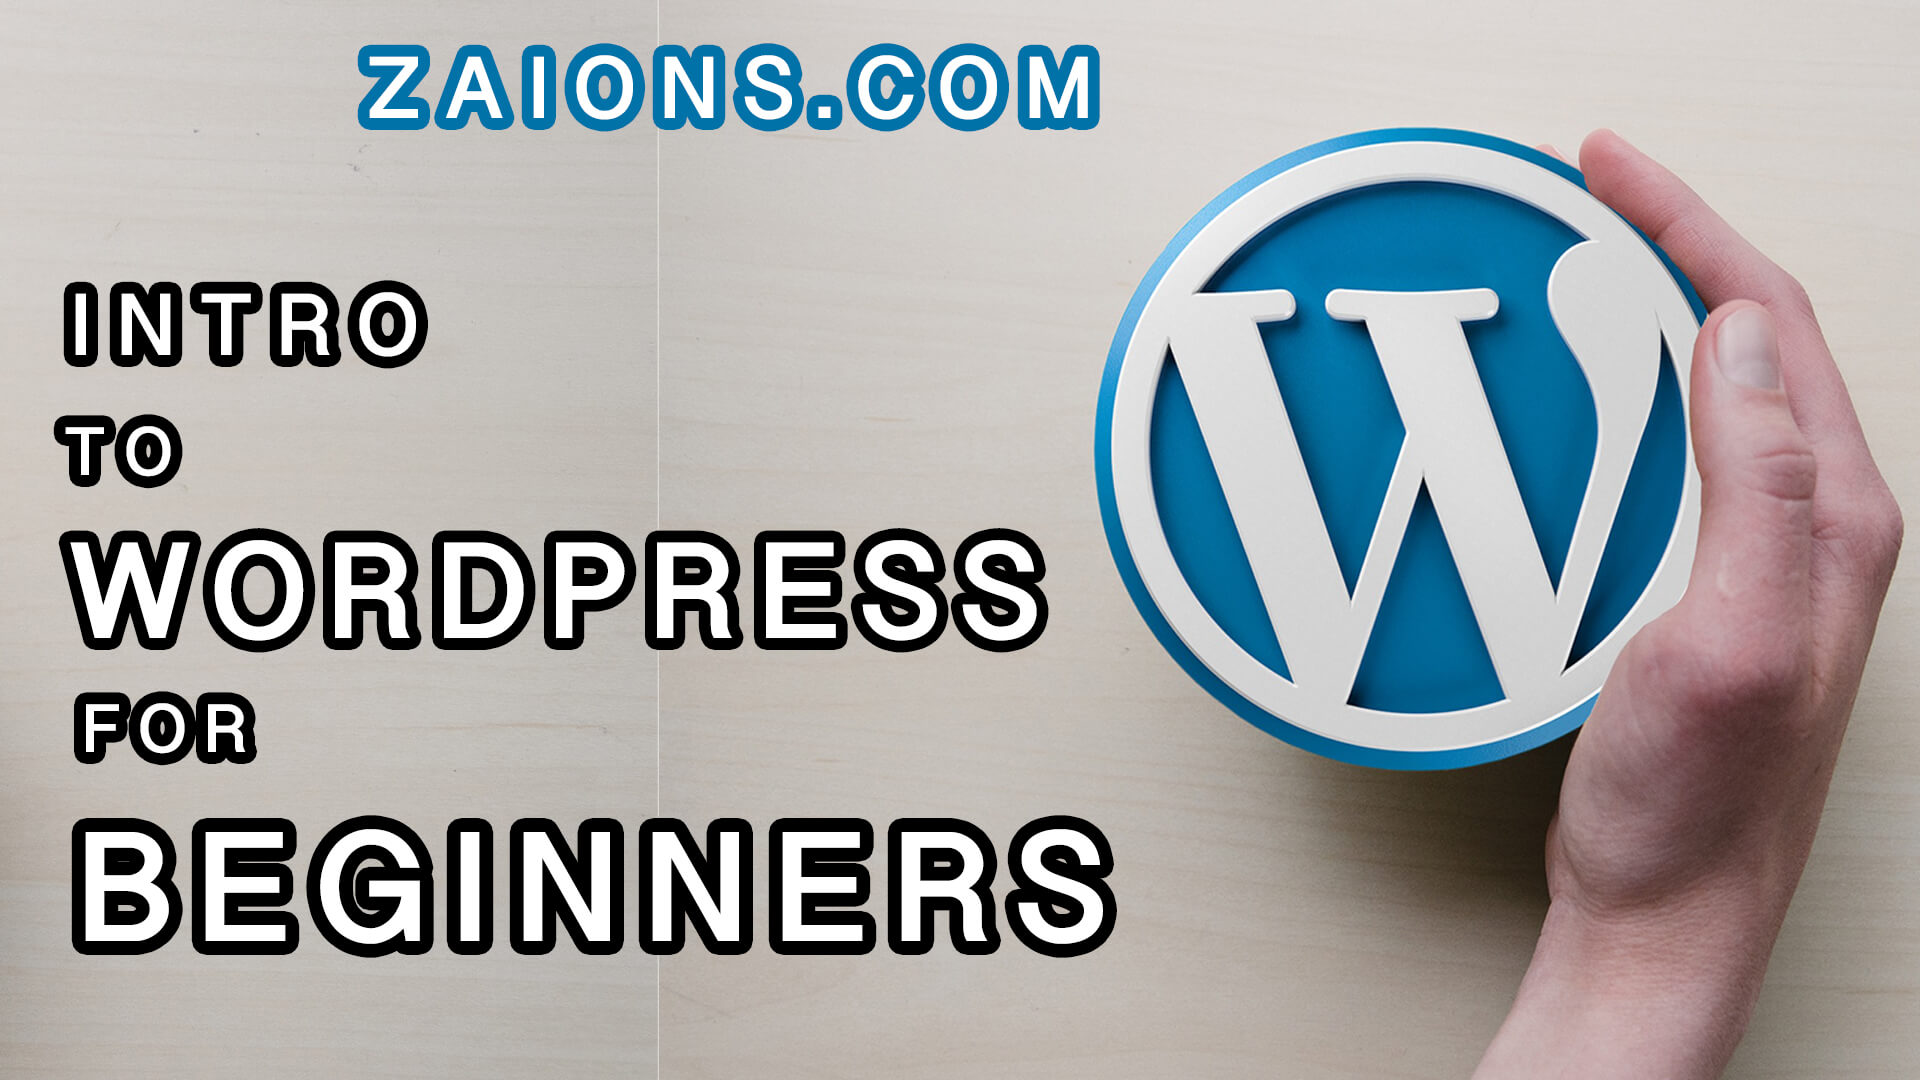 what is wordpress, introduction by Zaions.Com